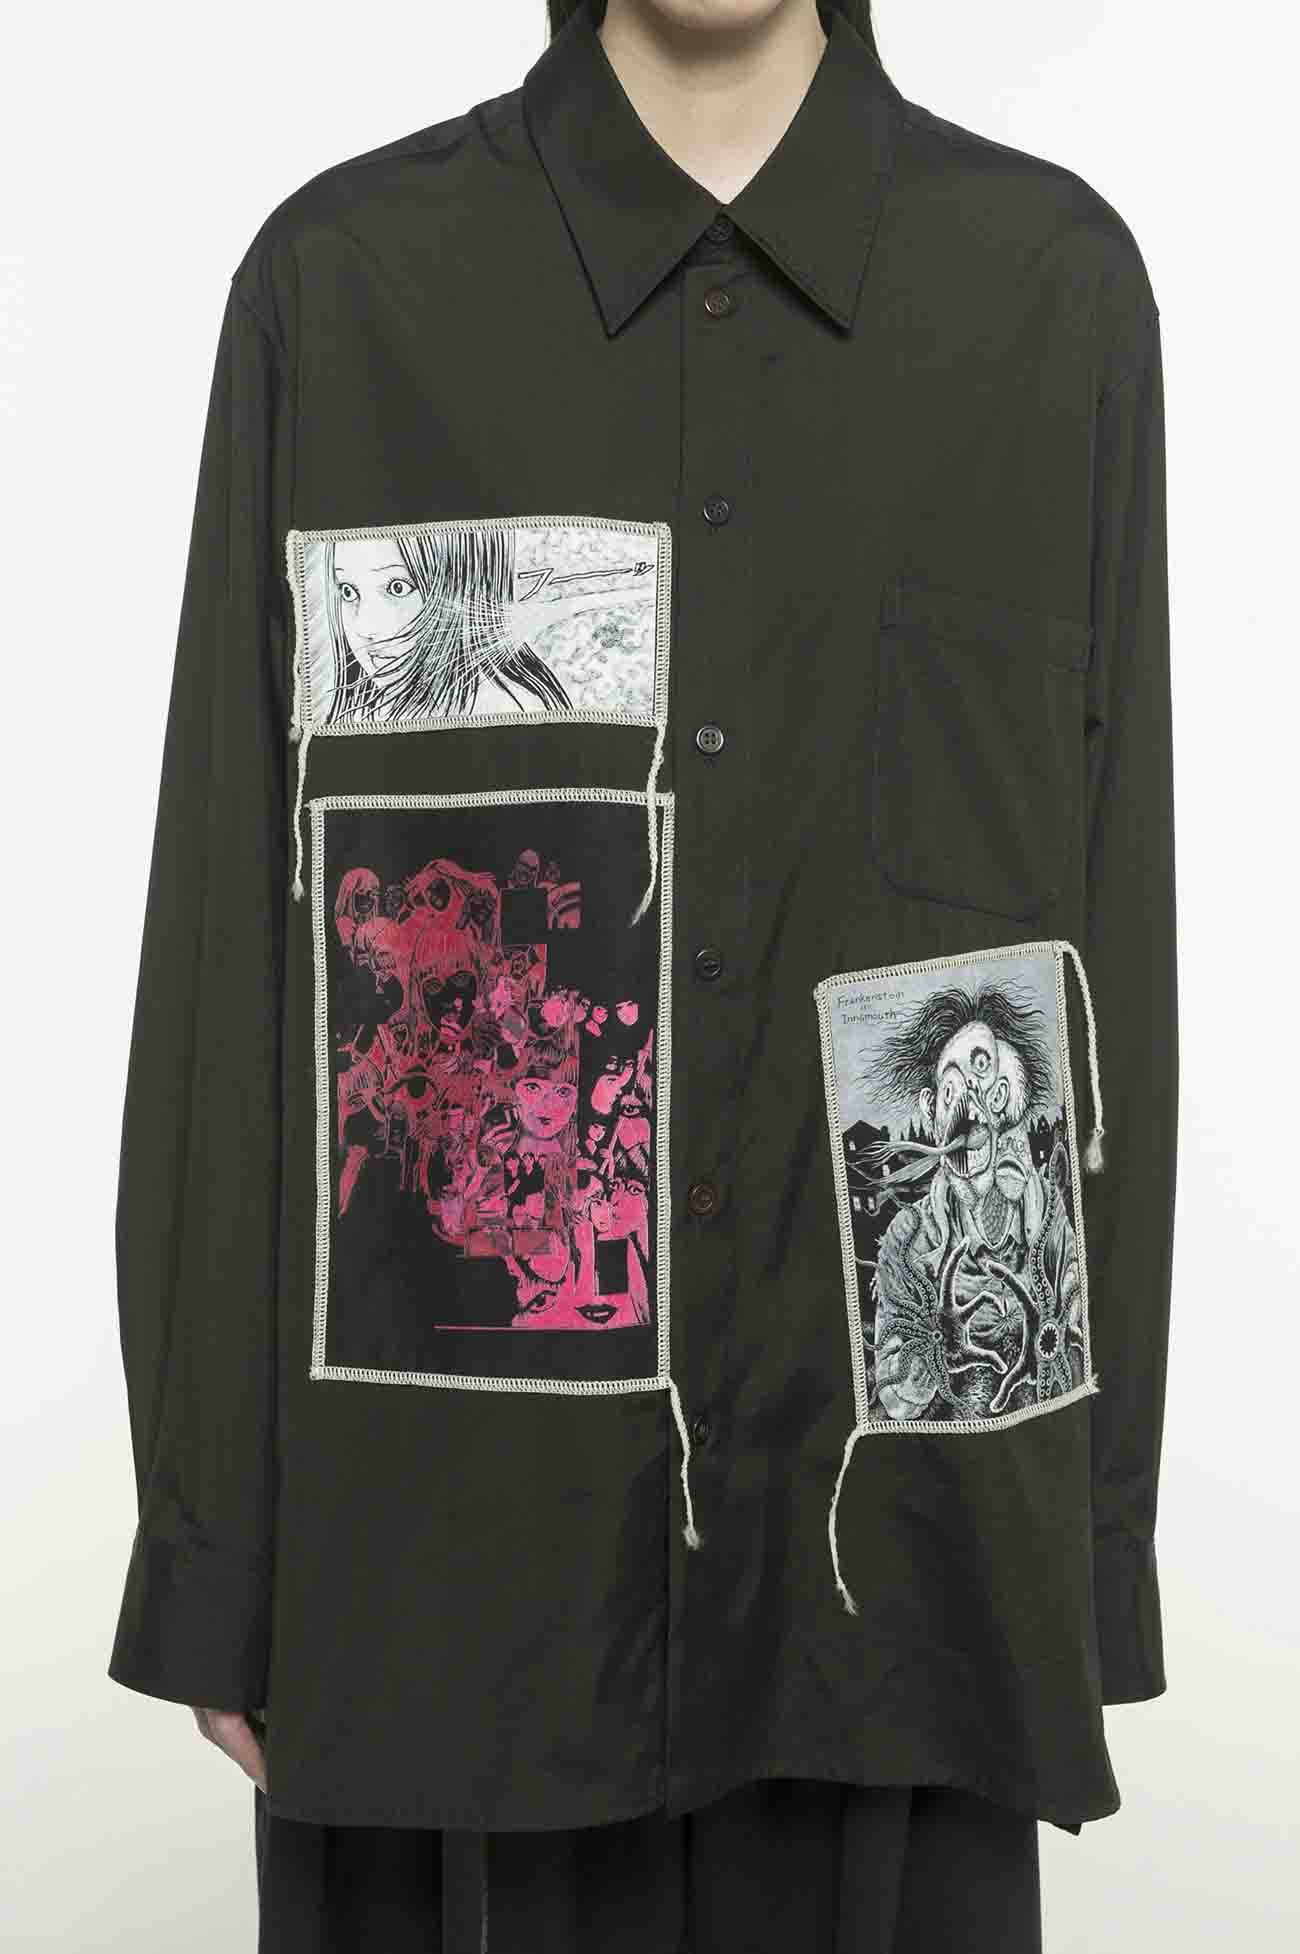 100/1 Broad Junji Ito「Best of Best」Printed Patch Shirt